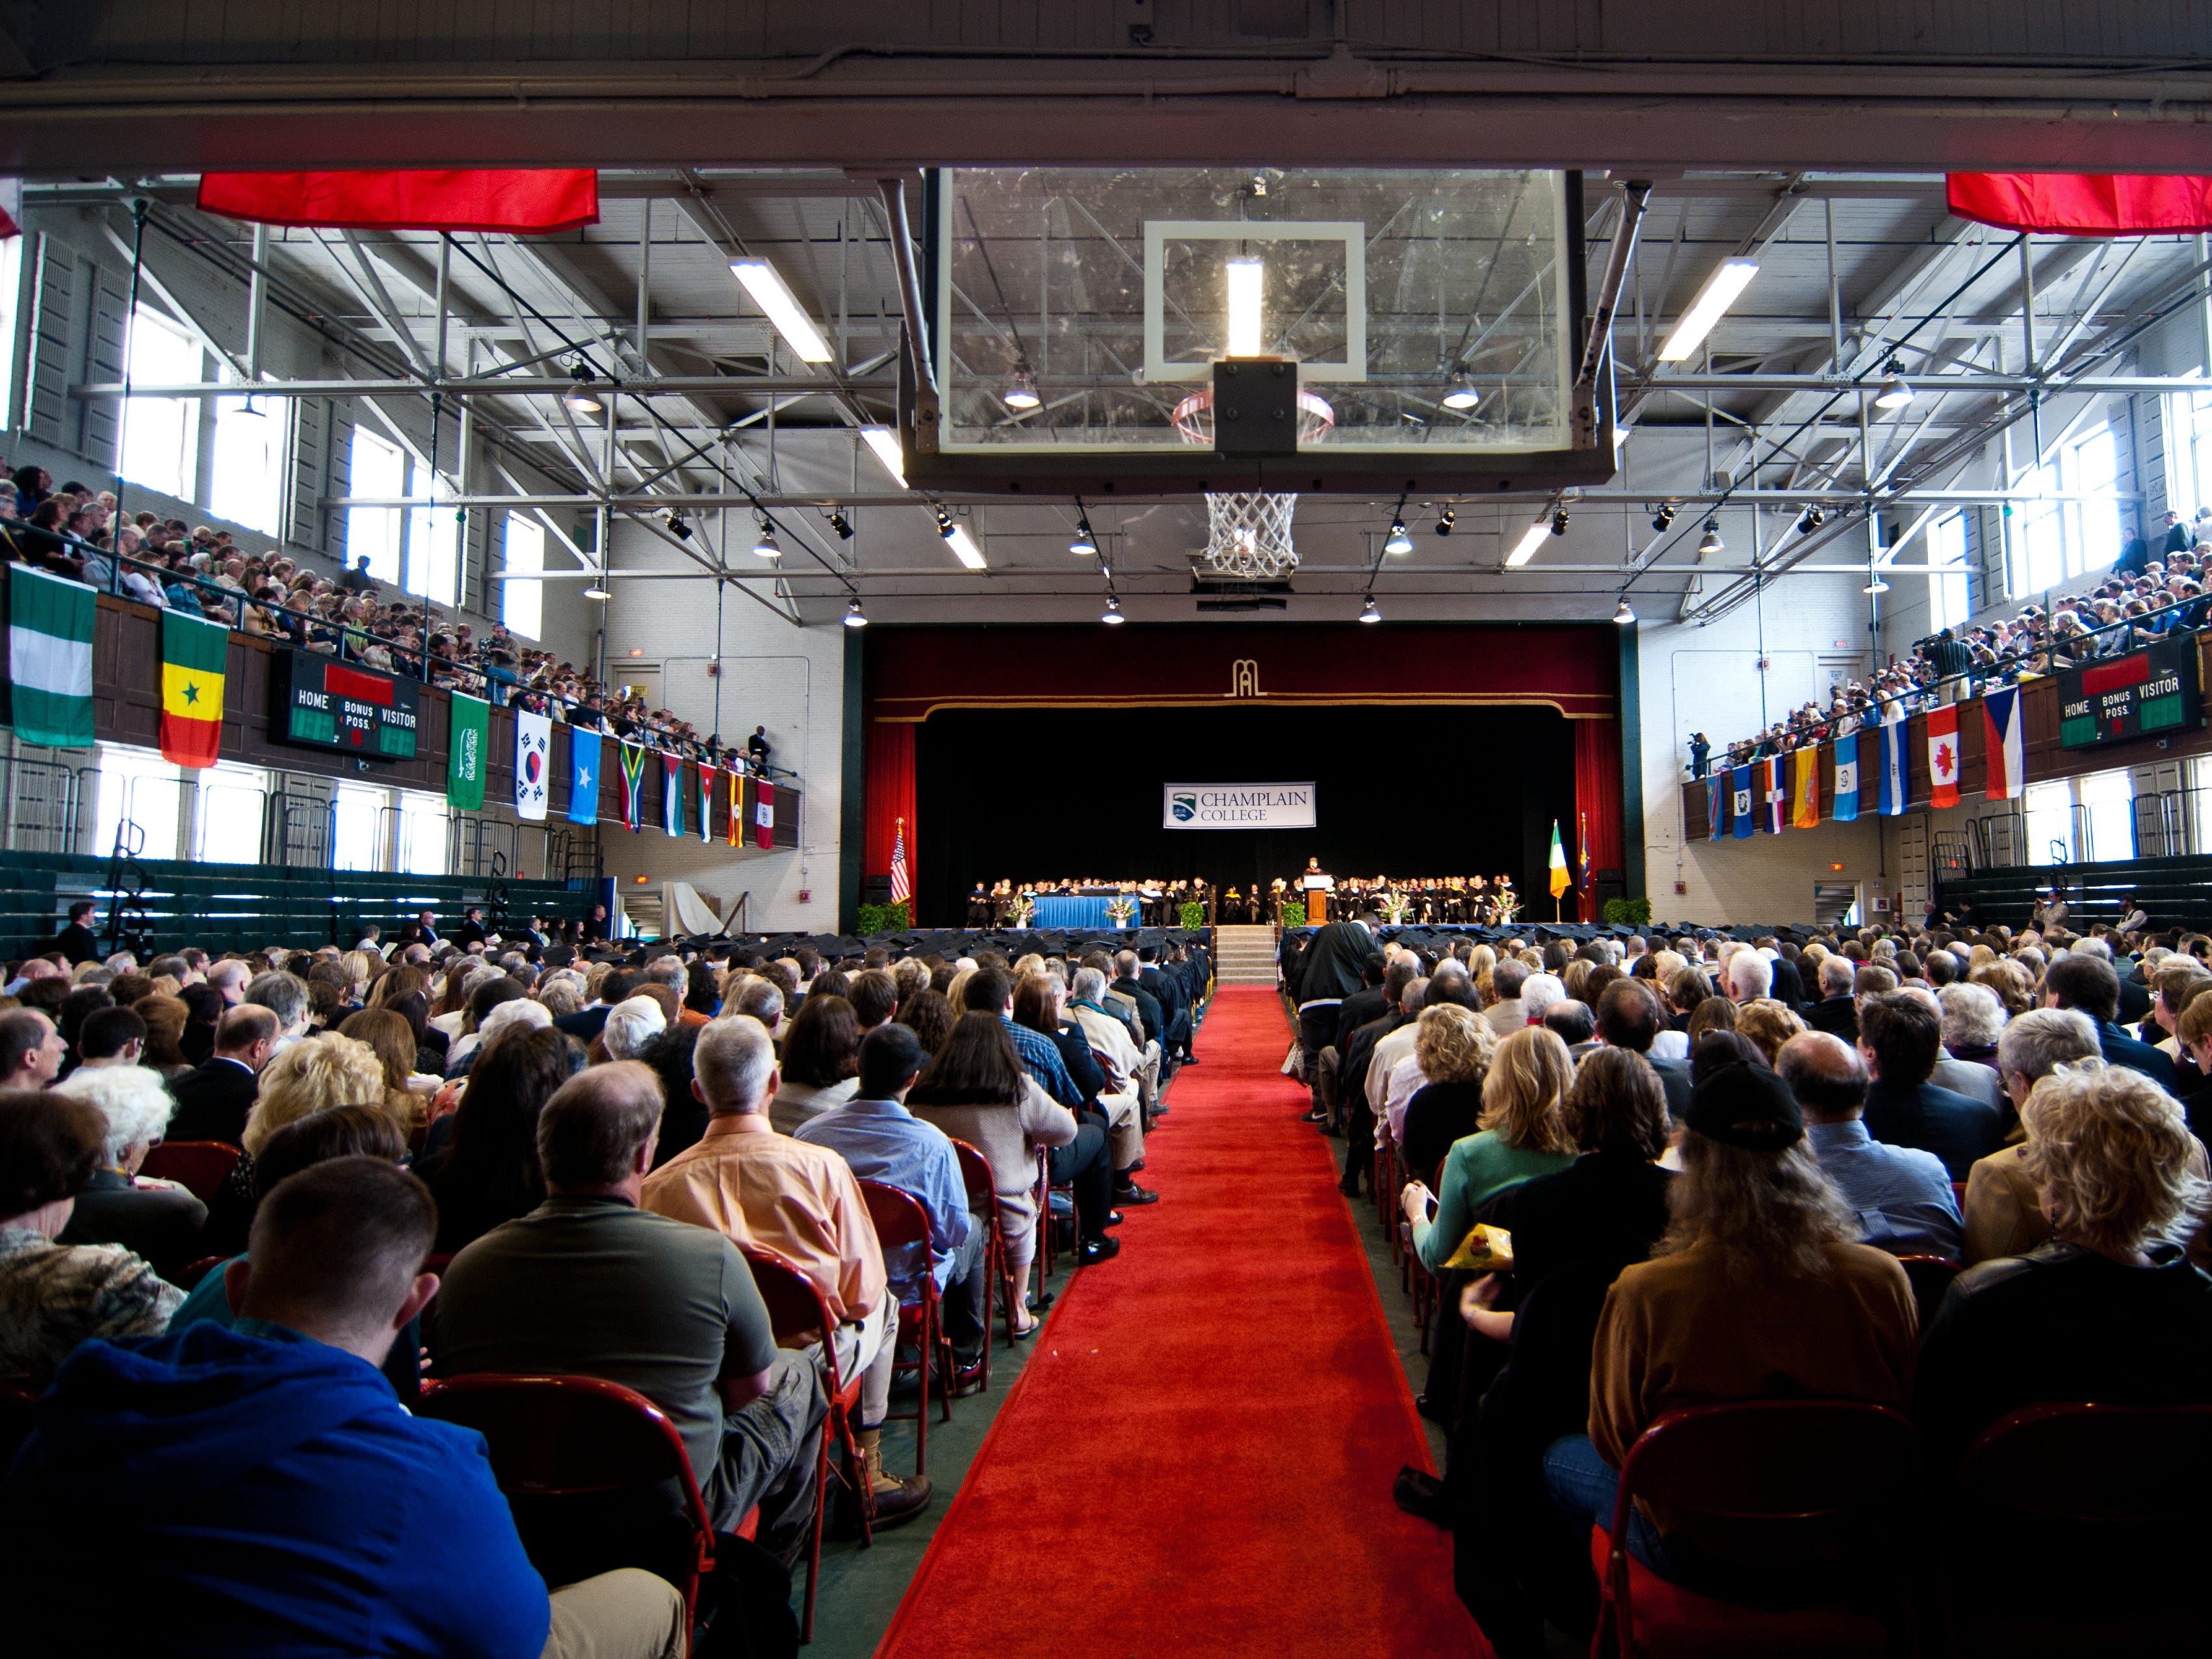 Students, parents and visitors gather in Memorial Auditorium in Burlington on Saturday morning for Champlain College's 134th commencement ceremony on Saturday, May 5, 2012.